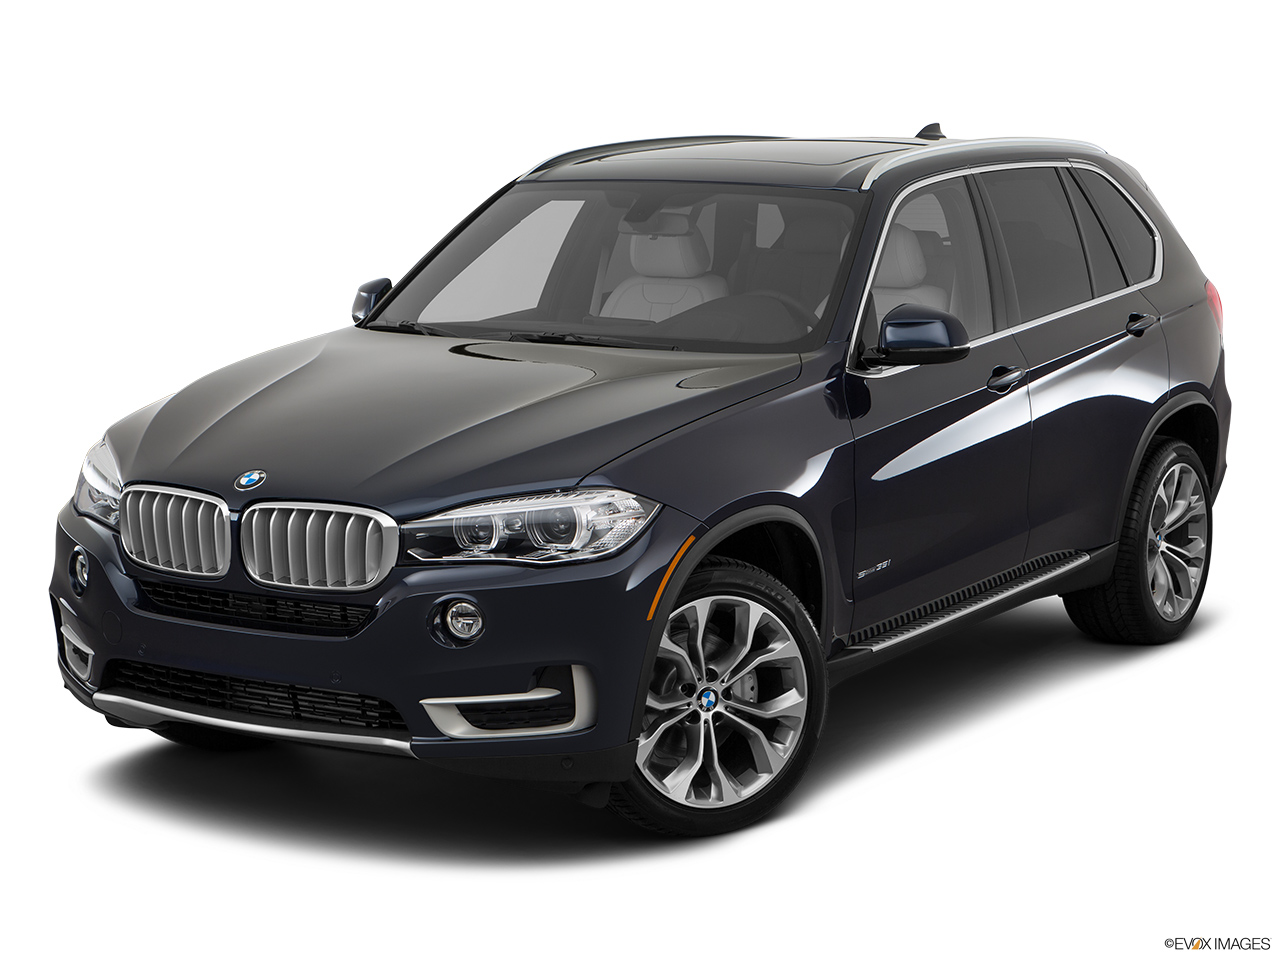 bmw x5 price in uae new bmw x5 photos and specs yallamotor. Black Bedroom Furniture Sets. Home Design Ideas